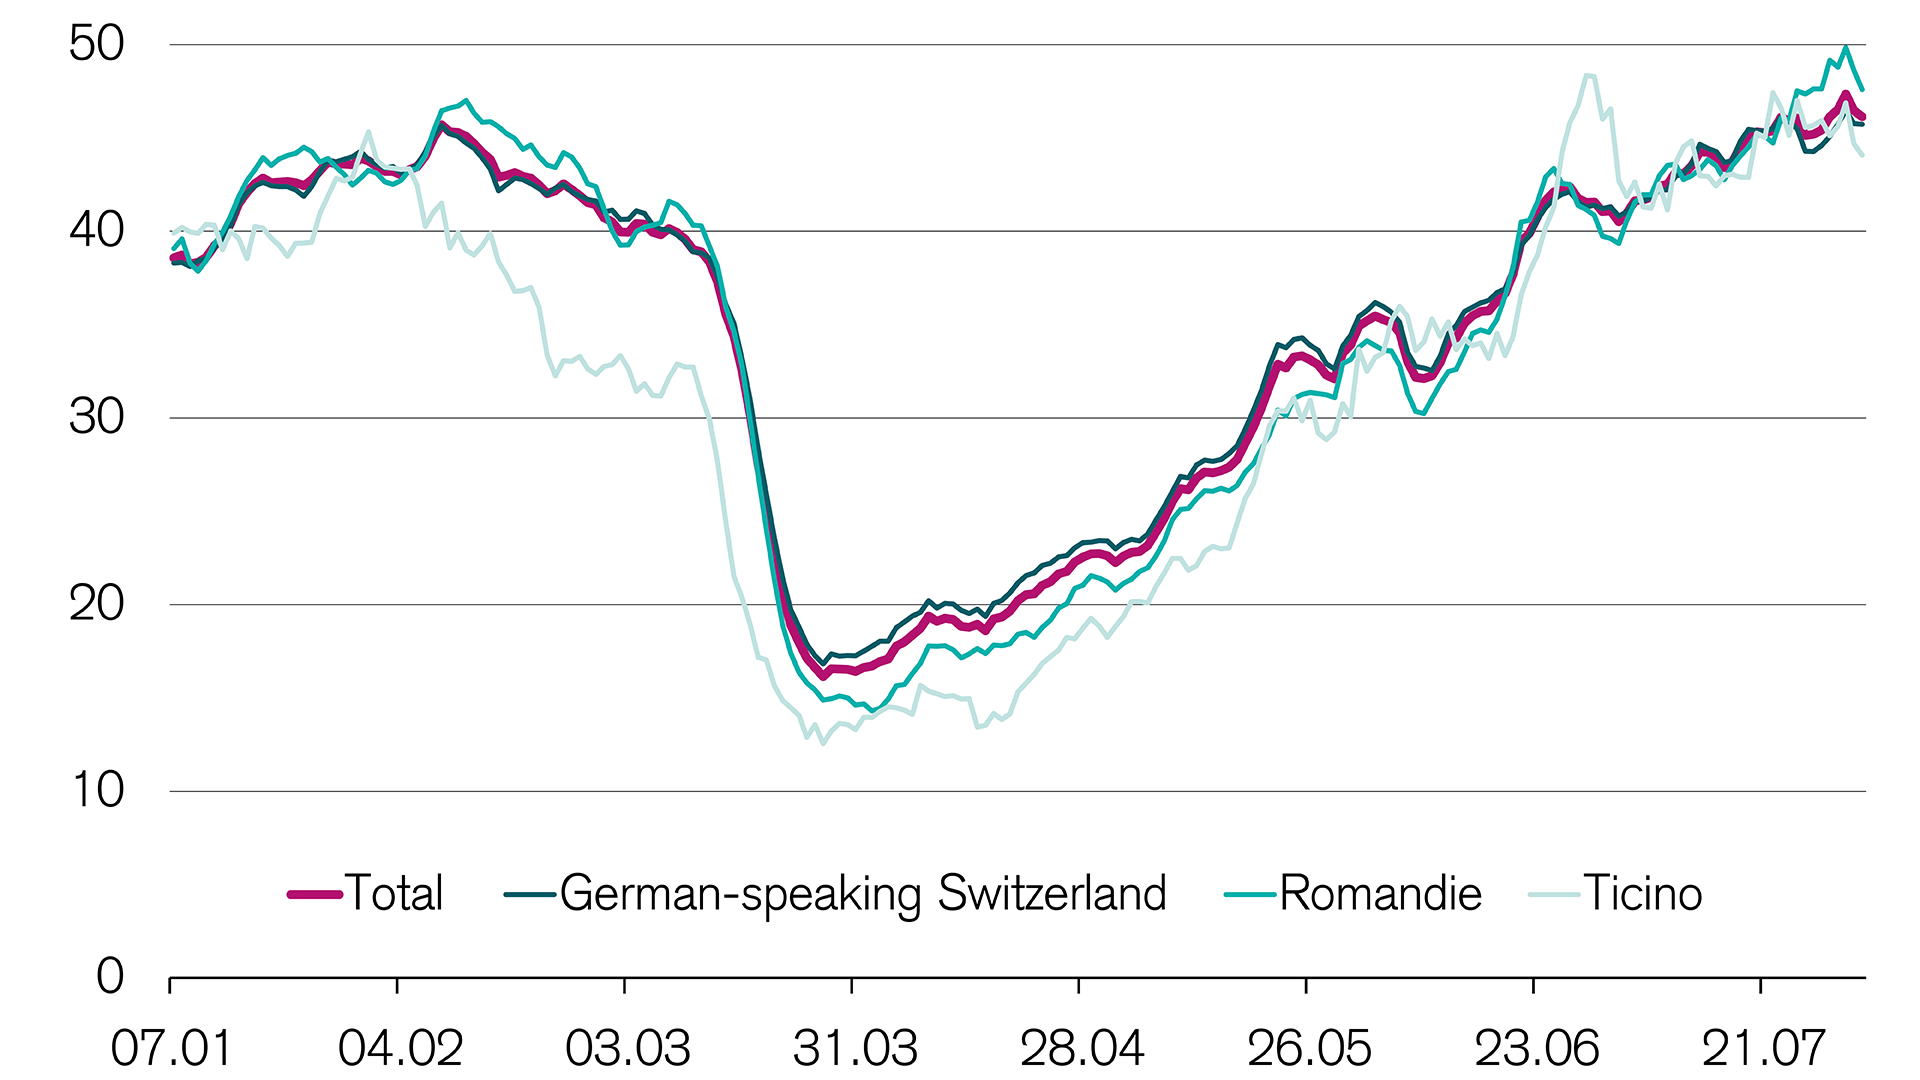 The Swiss are more mobile now than before the crisis